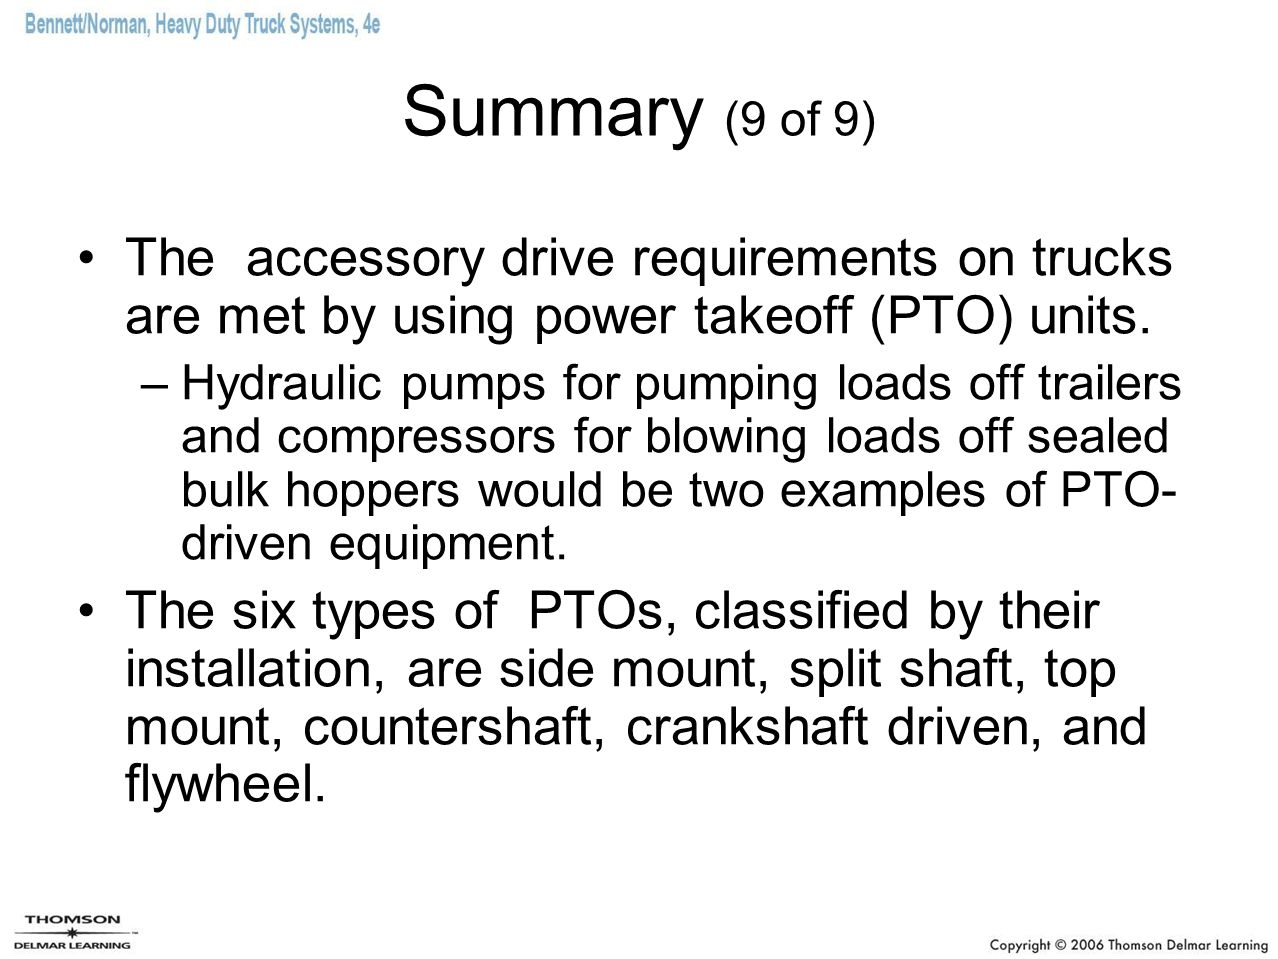 Summary (9 of 9) The accessory drive requirements on trucks are met by using power takeoff (PTO) units. –Hydraulic pumps for pumping loads off trailer